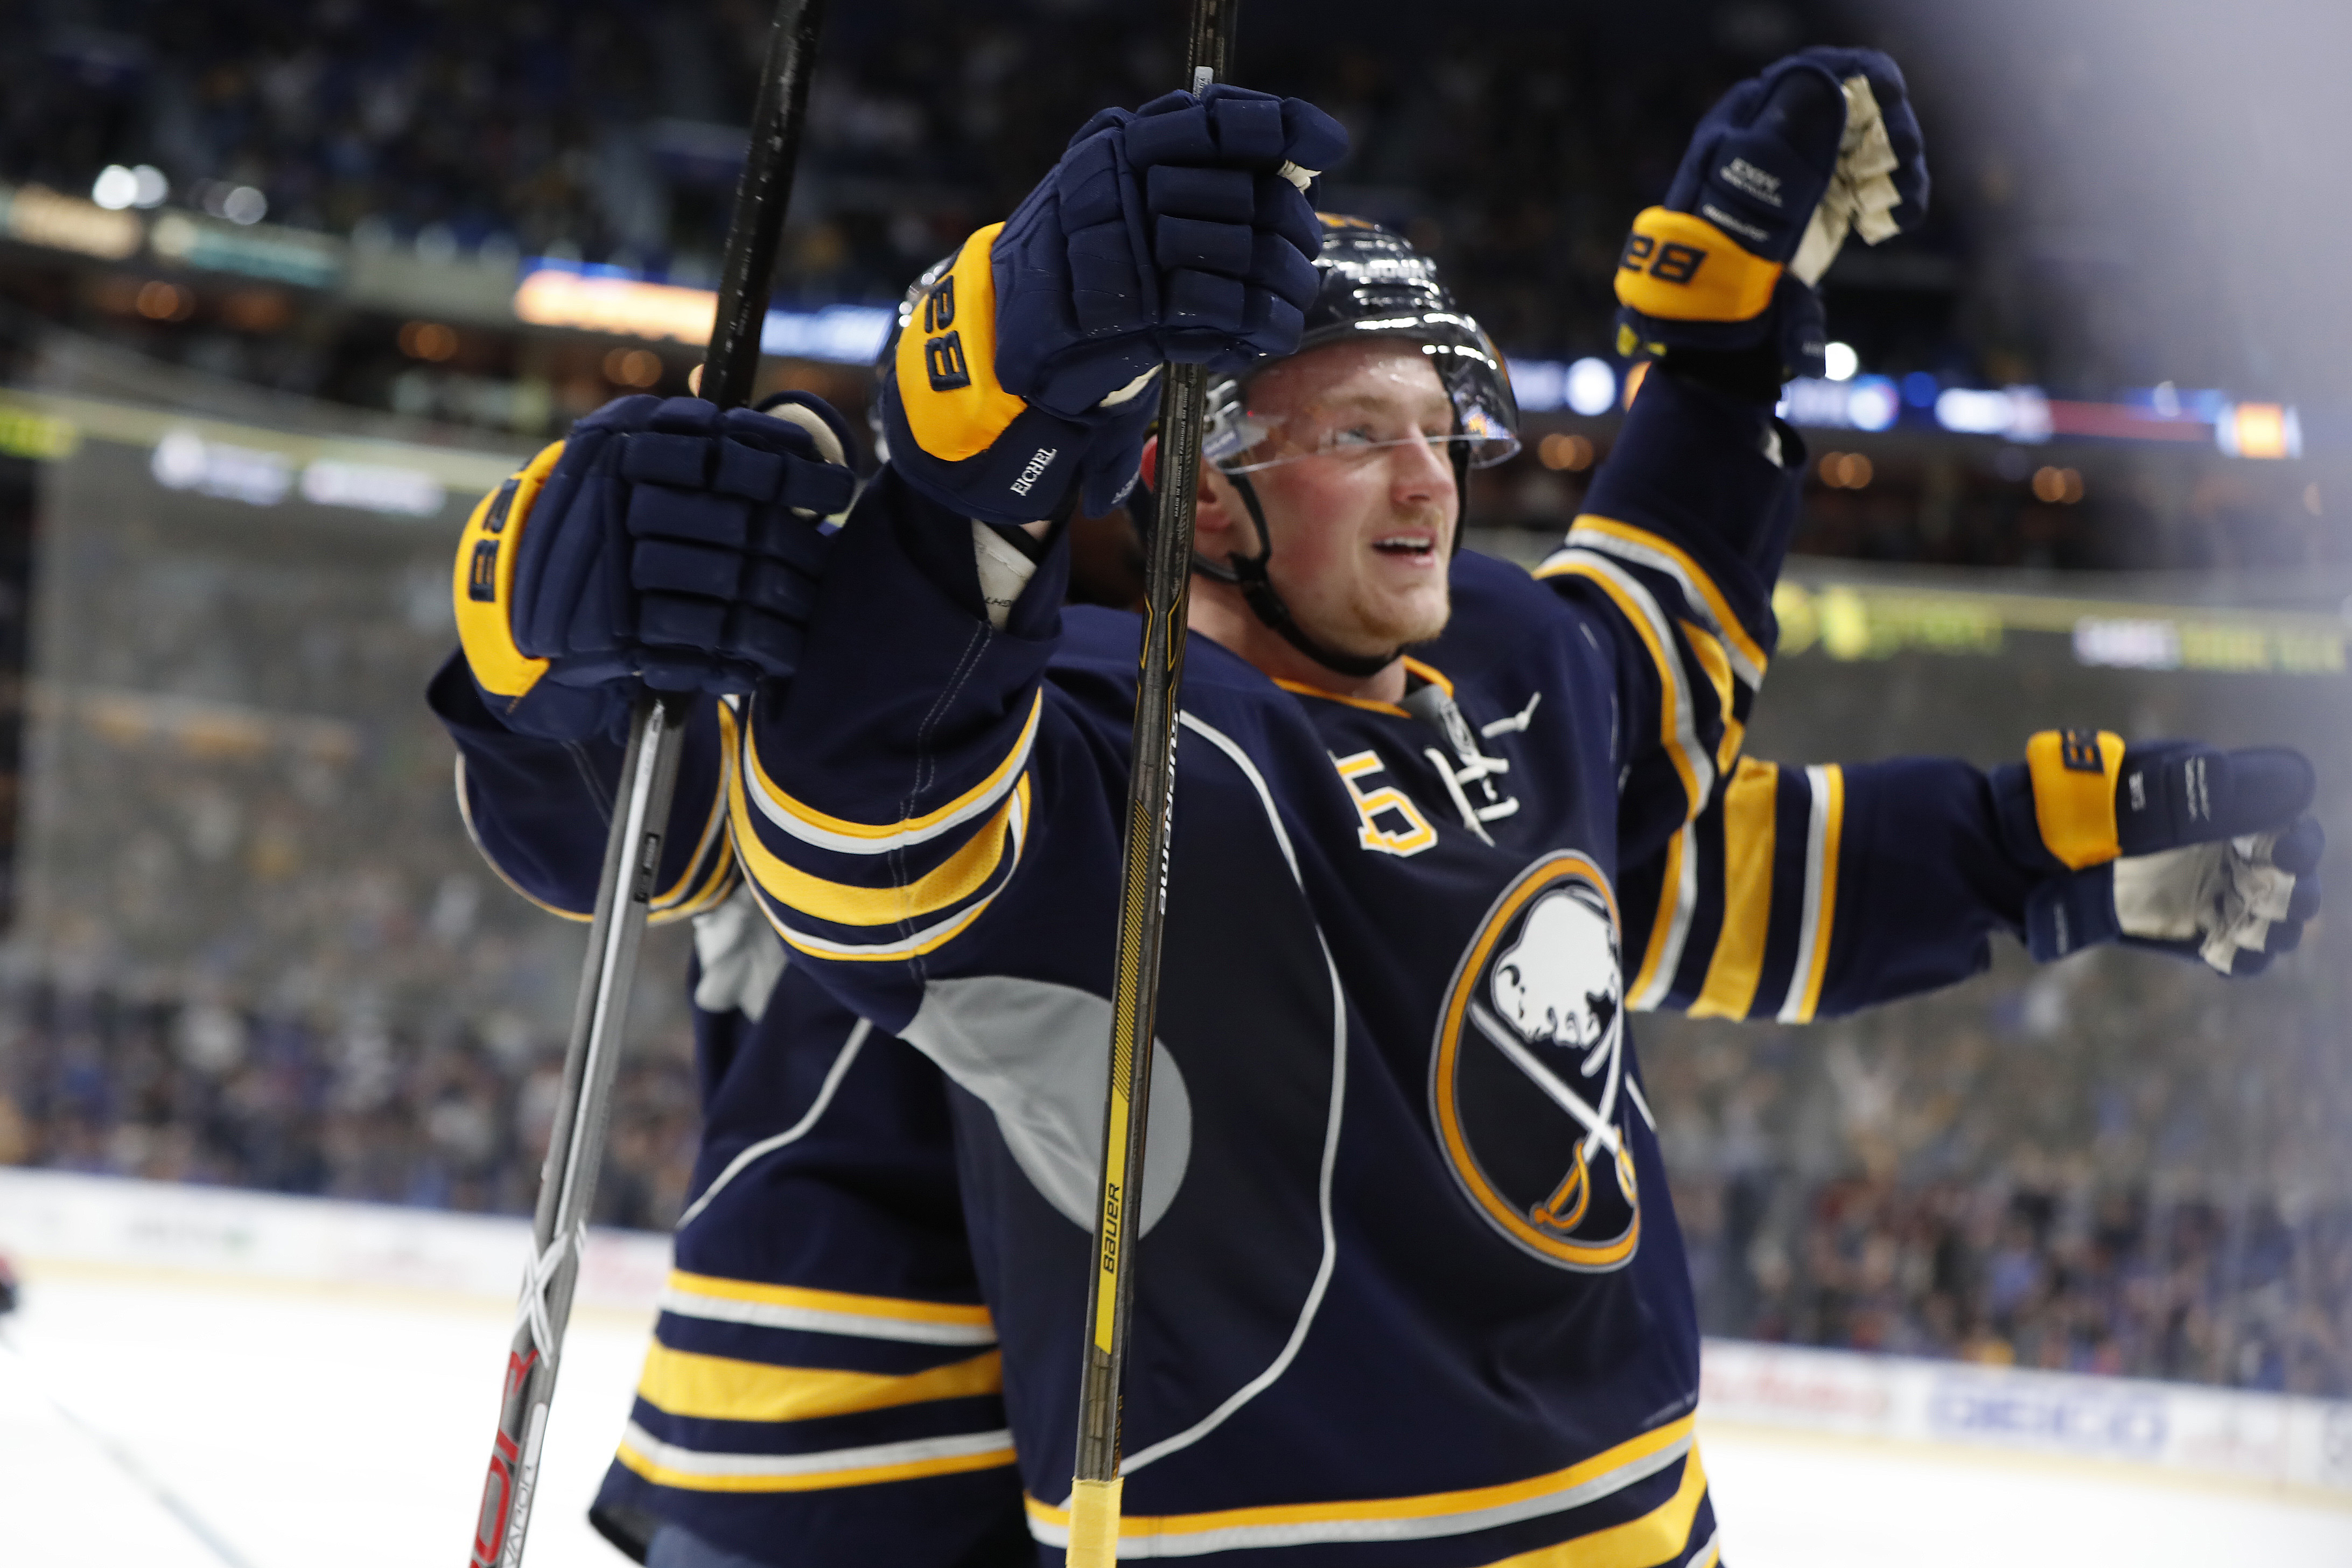 Jack Eichel celebrates the game-winning goal with Evander Kane (Harry Scull Jr./Buffalo News).